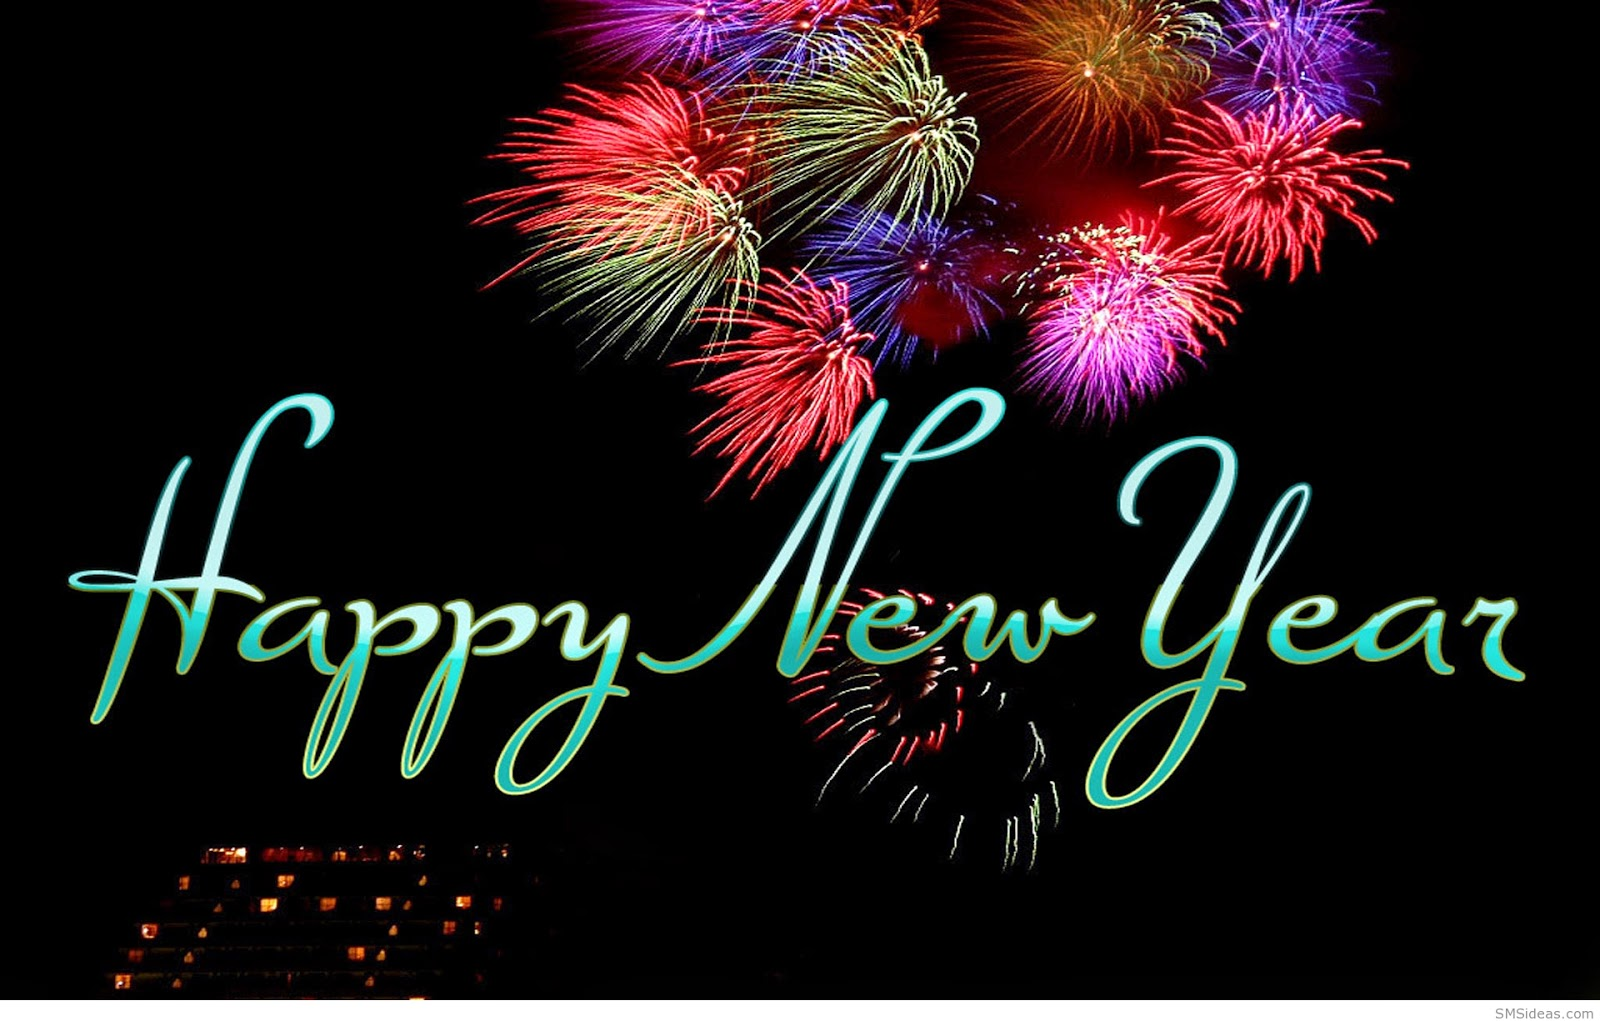 happy new year 2017 hd images wallpapers free download